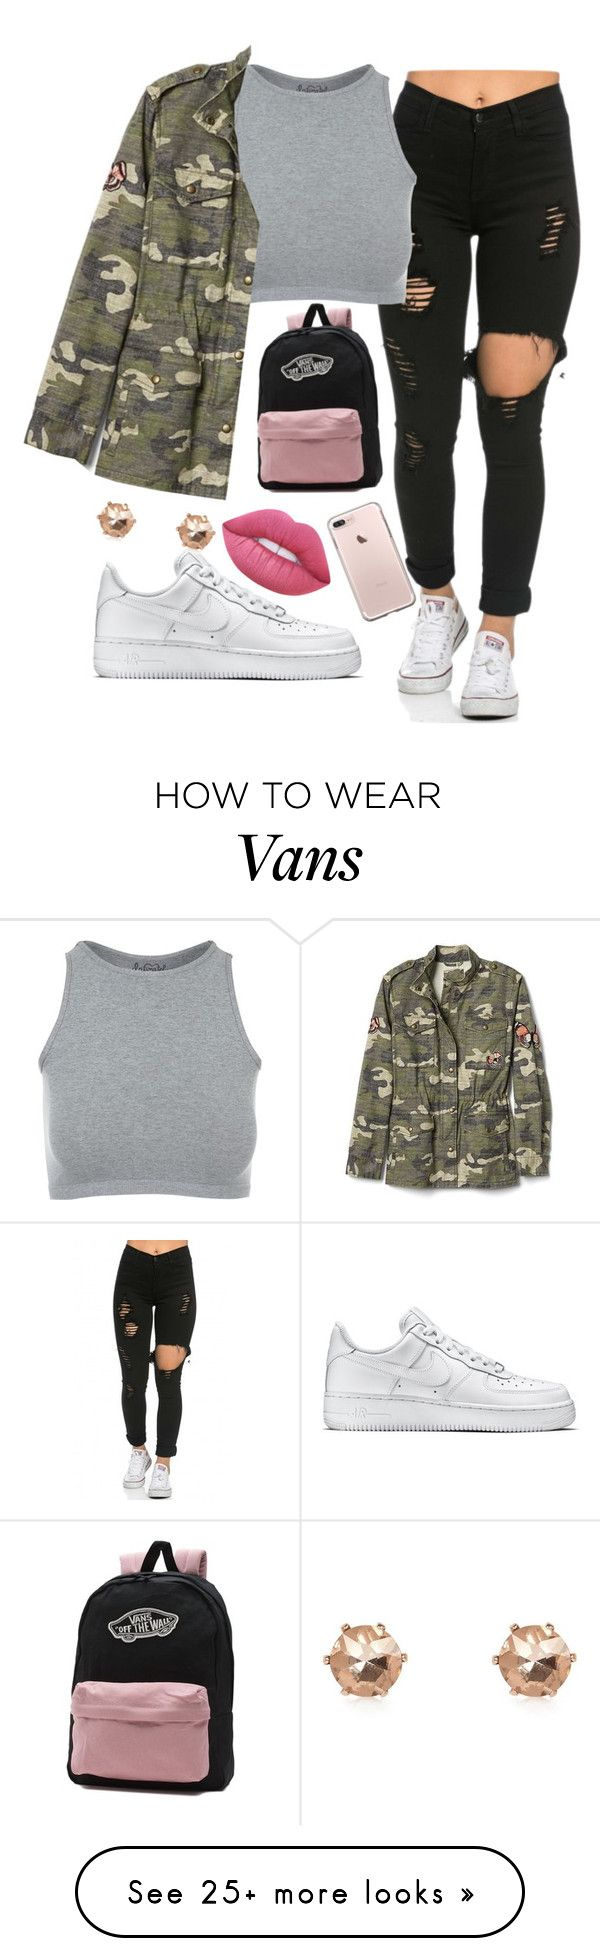 """""""OOTD"""" by iamrosyrosalie on Polyvore featuring NIKE, Free People, Gap, Vans, Lime Crime and River Island"""